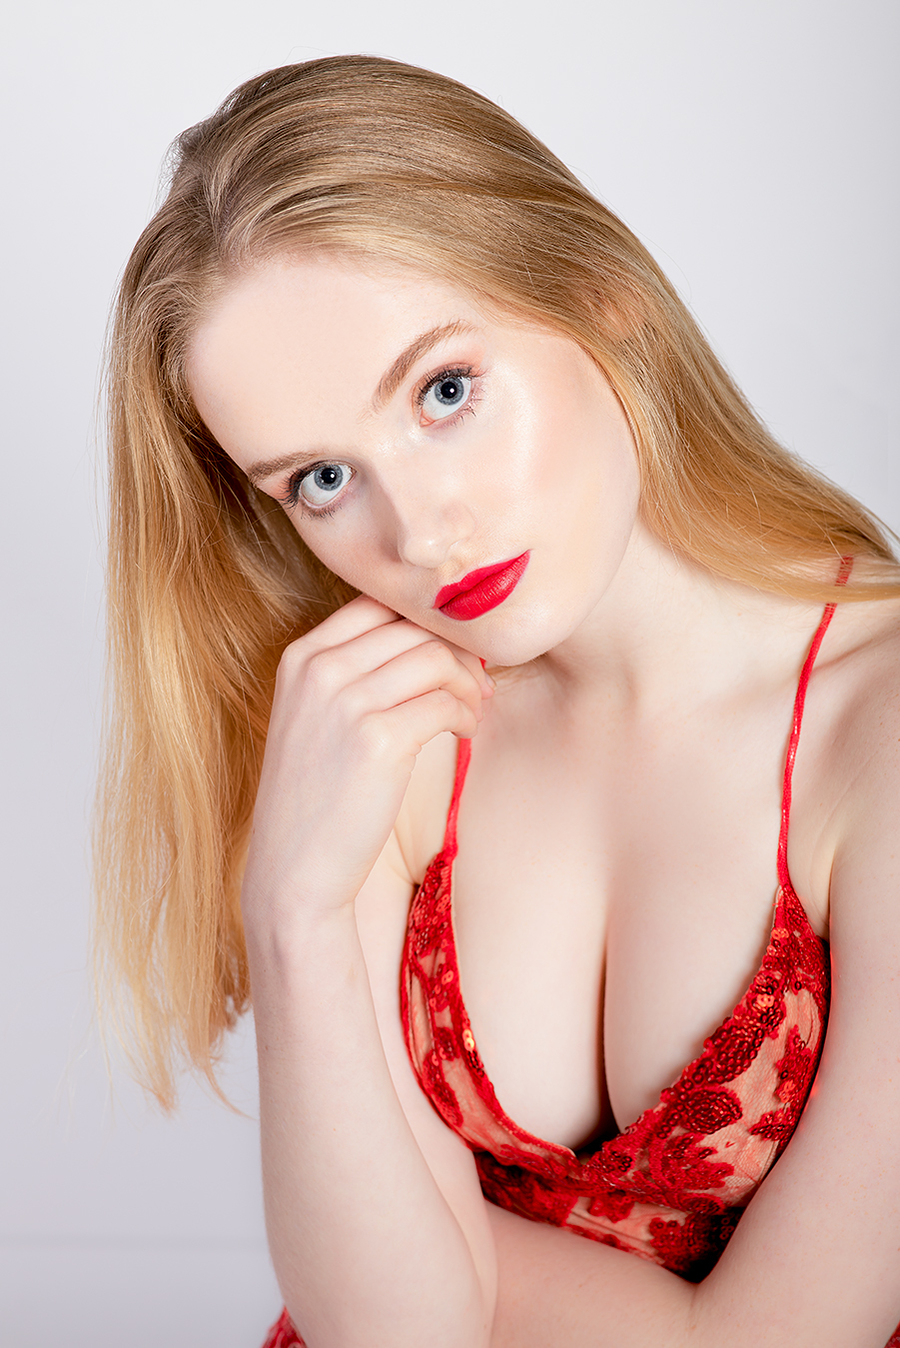 Photography by Paul Davies, Model Saffron Whyton, Post processing by Paul Davies, Taken at f/8 Studio / Uploaded 19th September 2019 @ 02:39 PM